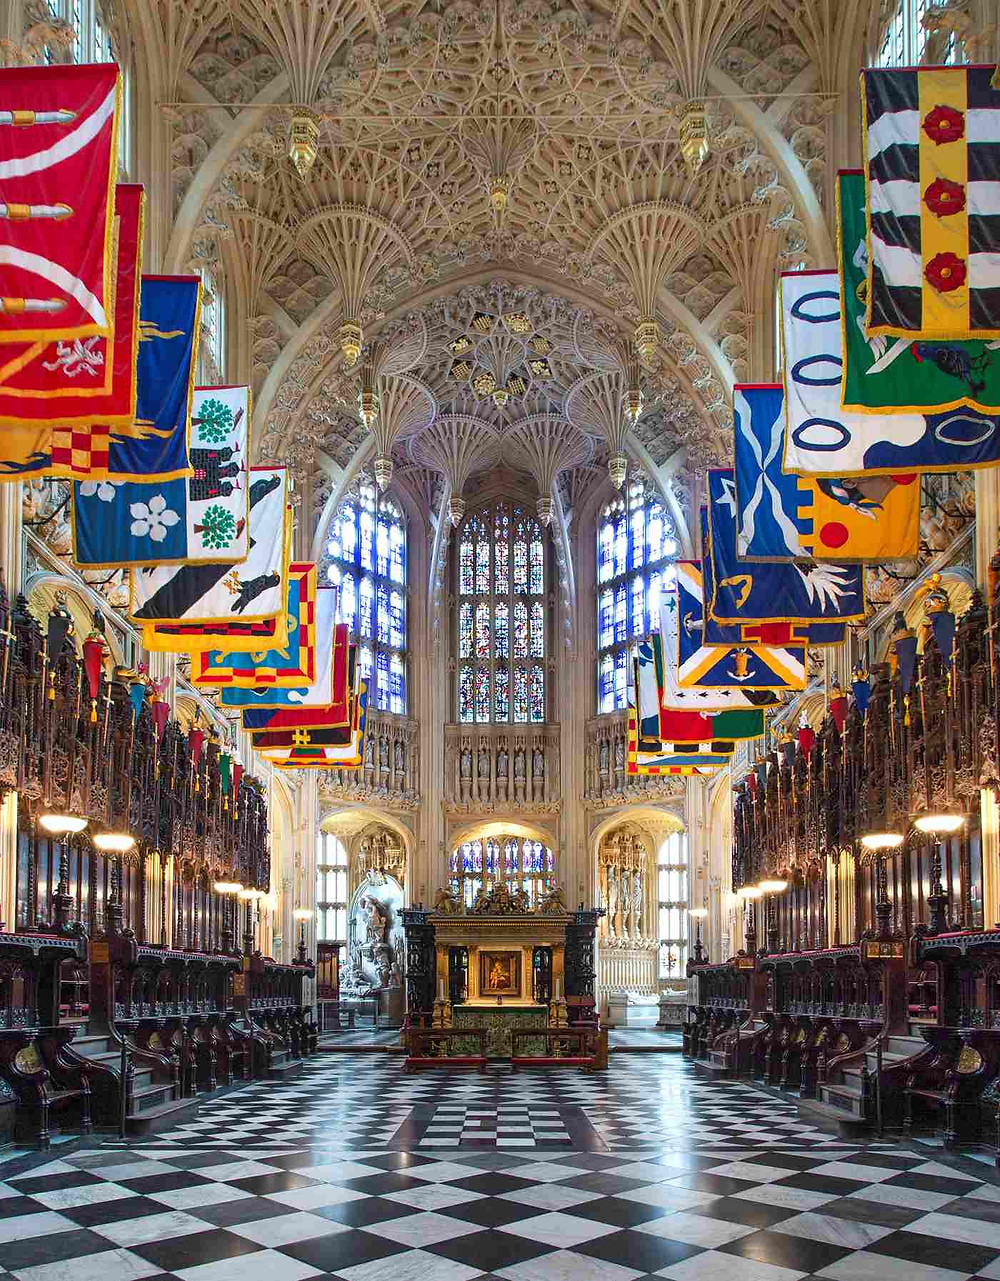 the Henry VII Lady Chapel of Westminster Abbey